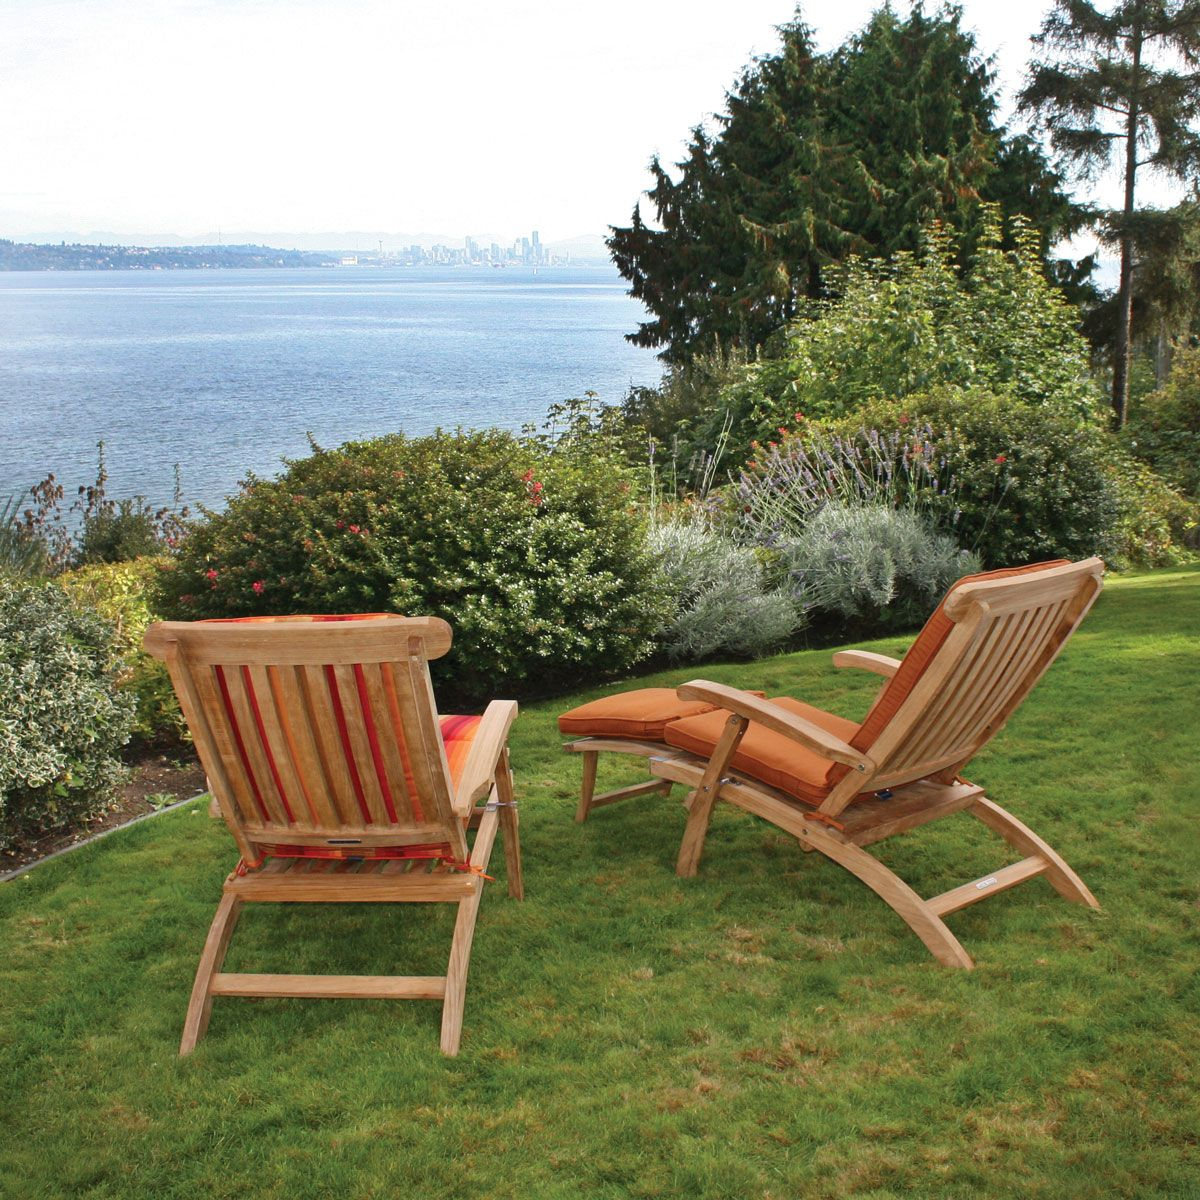 Amazing Teak Steamer Chair | Classic Outdoor Teak Deck Chair | Thos. Baker